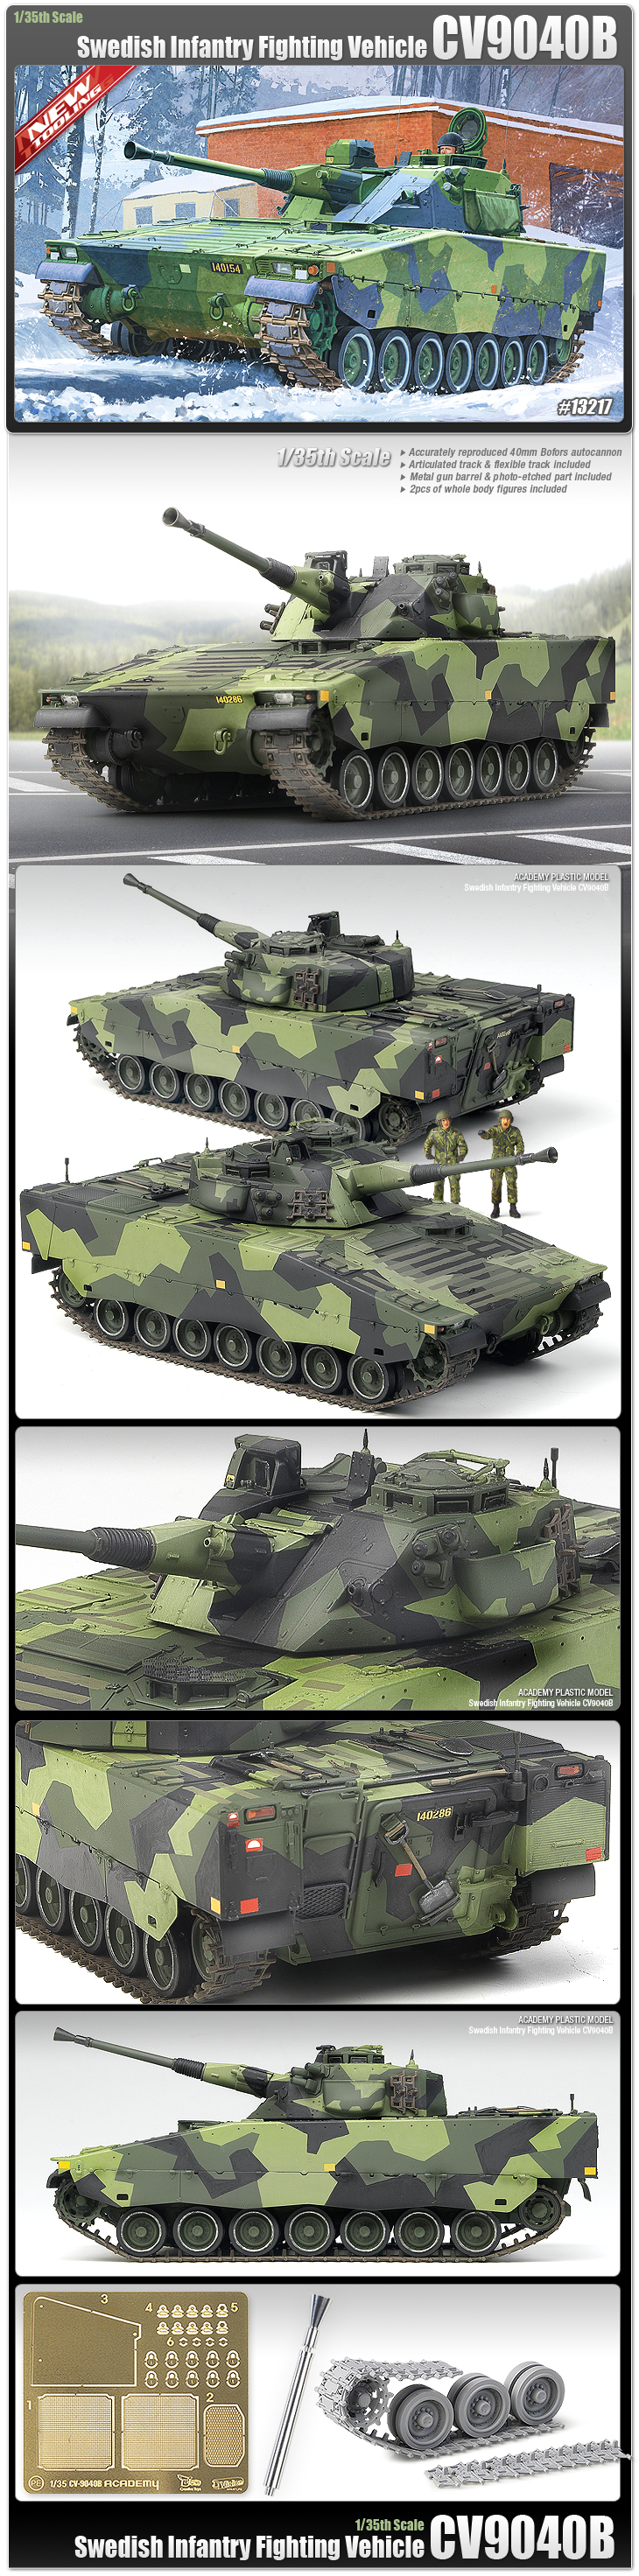 Academy 13217 1:35 CV9040B Swedish Infantry Fighting Vehicle This is an Academy 13217 1/35 CV9040B Swedish Infantry Tank. CV-9040B Swedish Infantry Fighting Vehicle. The Combat Vehicle 90 (CV90) or Stridsfordon 90 (Strf 90) is a Swedish infantry fighting vehicle produced by BAE Systems. In 1984, the Swedish army requested a unique vehicle with high mobility, air defence and anti-tank capability, with high survivability and protection. five prototypes were developed and were tested during extensive trials. The first deliveries started in 1993, and now over 1000 CV90s have been delivered worldwide. Its armor is capable of withstanding 30mm armour-piercing fin-stabilized discarding sabot (APFSDS). The CV90 has a two-man turret, armed with Bofors 40 mm cannon and coaxial 7.62 mm machine gun. It also carries two clusters of four smoke grenade launchers positioned on each side of the turret. Academy s kit is precise in every way. Details and options abound. Choose the single flexible tracks or the purist can construct the extensive, individual section, articulated tracks. The 40mm Bofors cannon is very accurately produced in metal, along with 28 photo-etched parts. Hatches can be displayed open or closed and the turret and cannon are positionable. Academy included decals, clear parts, two soldier figures, along with precise camo painting instructions to complete this magnificent 1/35 scale kit.Condition: Factory NewOperational Status: FunctionalThis item is brand new from the factory.Original Box: YesManufacturer: AcademyModel Number: 13217MSRP: $58.00Category 1: Model KitsCategory 2: 1:32 ScaleAvailability: Ships in 1 Business Day!The Trainz SKU for this item is P11998317. Track: 11998317 - No Location Assigned - 001 - TrainzAuctionGroup00UNK - TDIDUNK